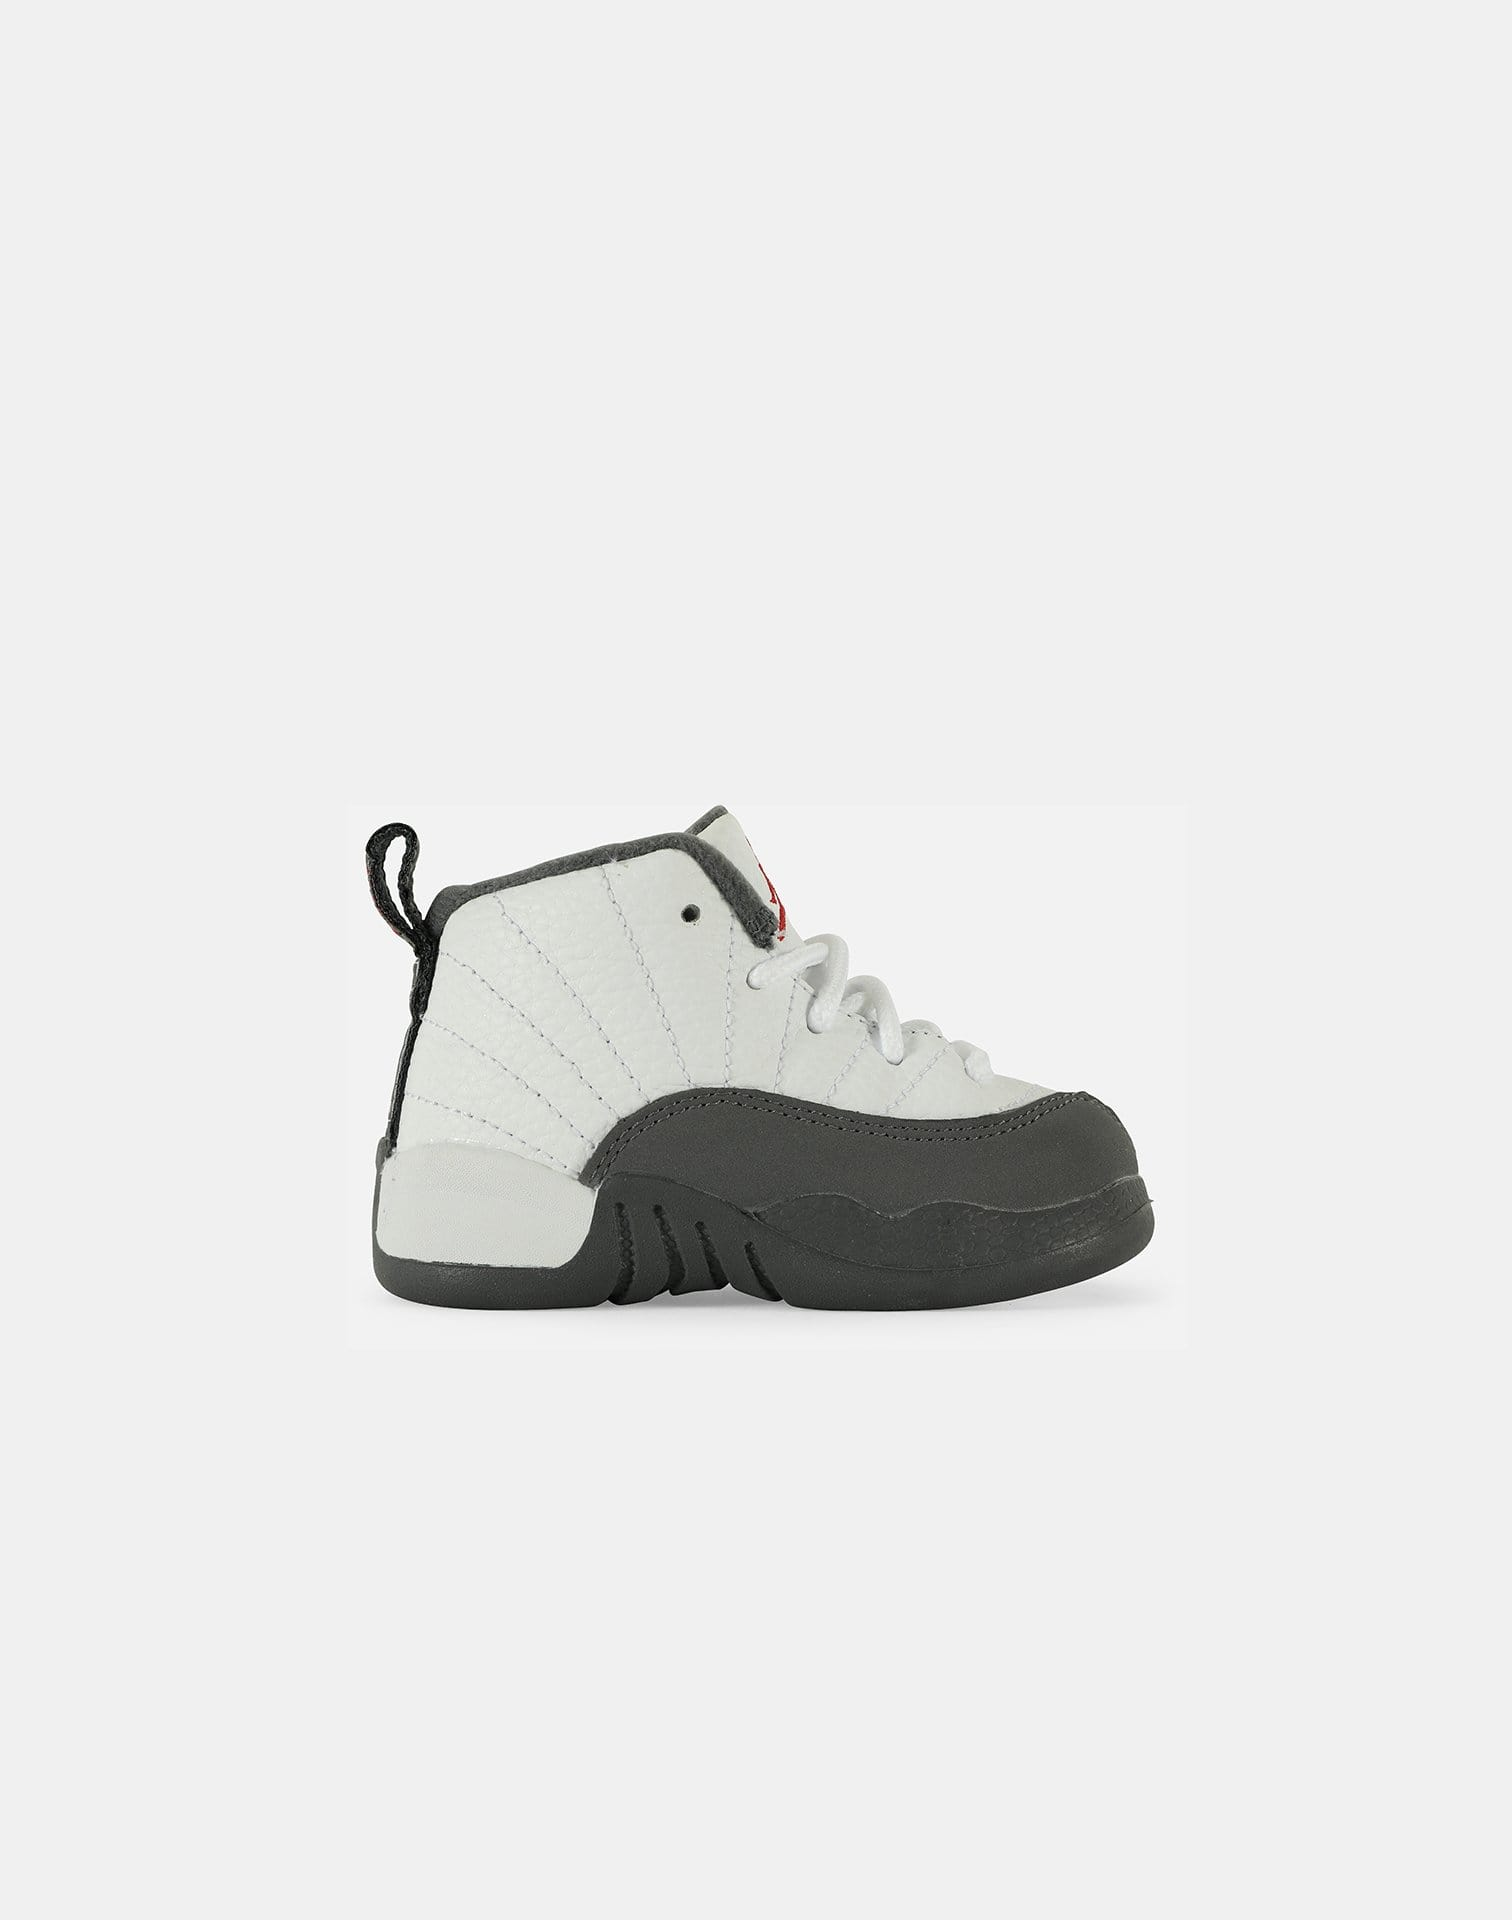 AIR JORDAN RETRO 12 'DARK GREY' INFANT